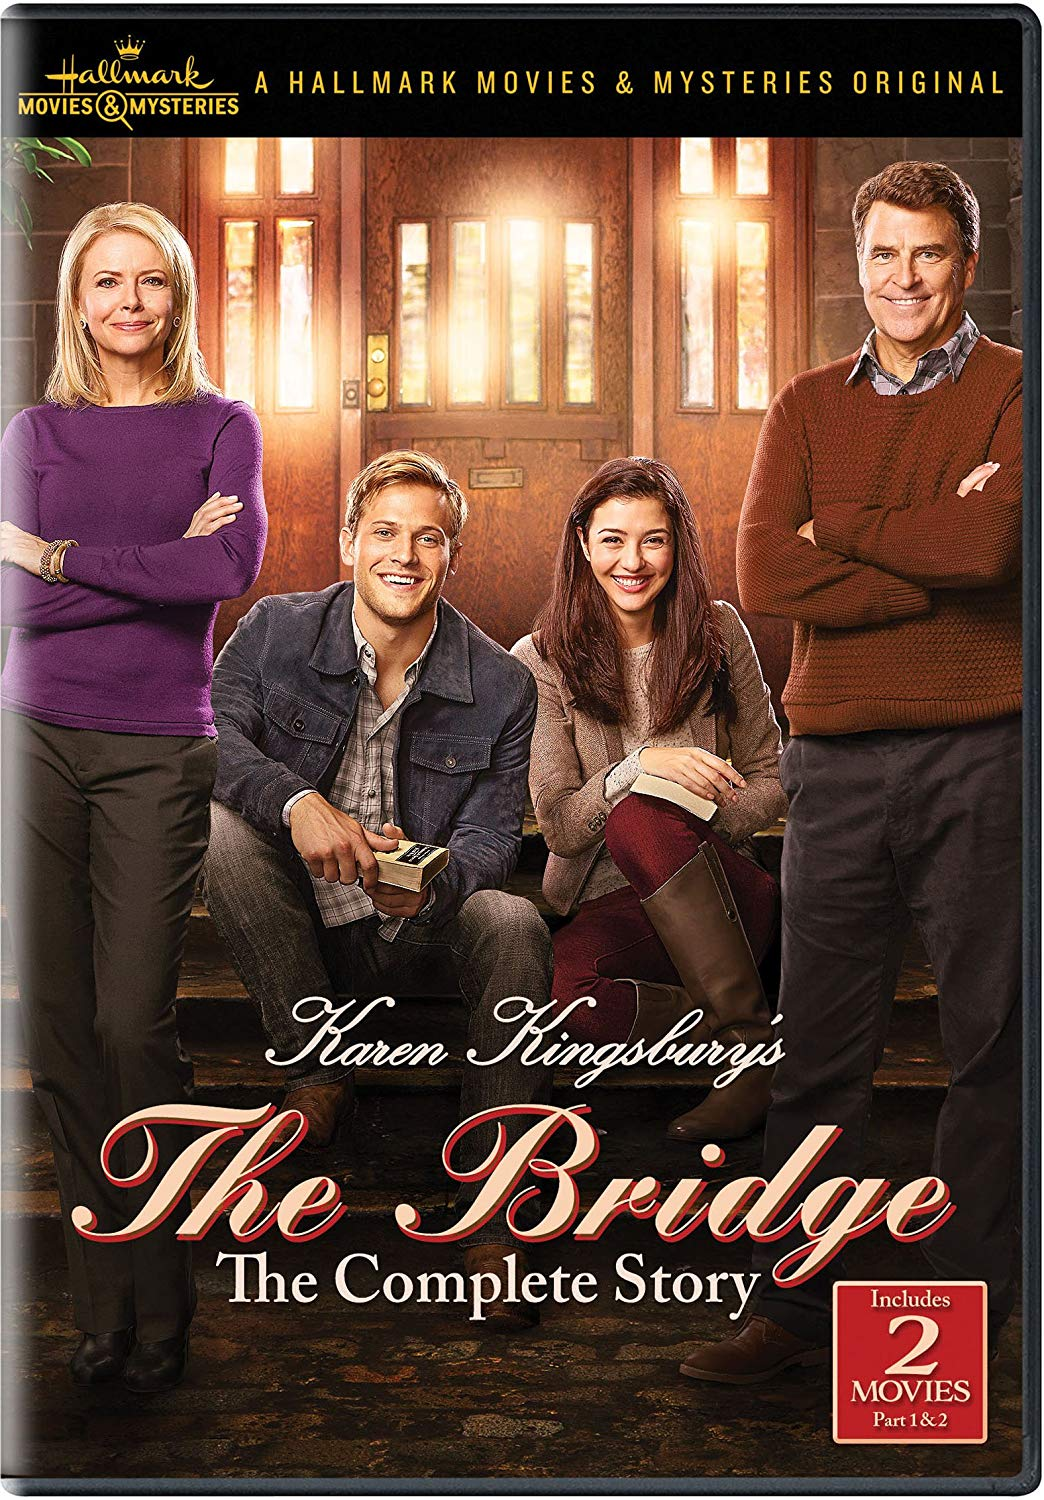 whats the best hallmark christmas movie youve seen - Best Hallmark Christmas Movies